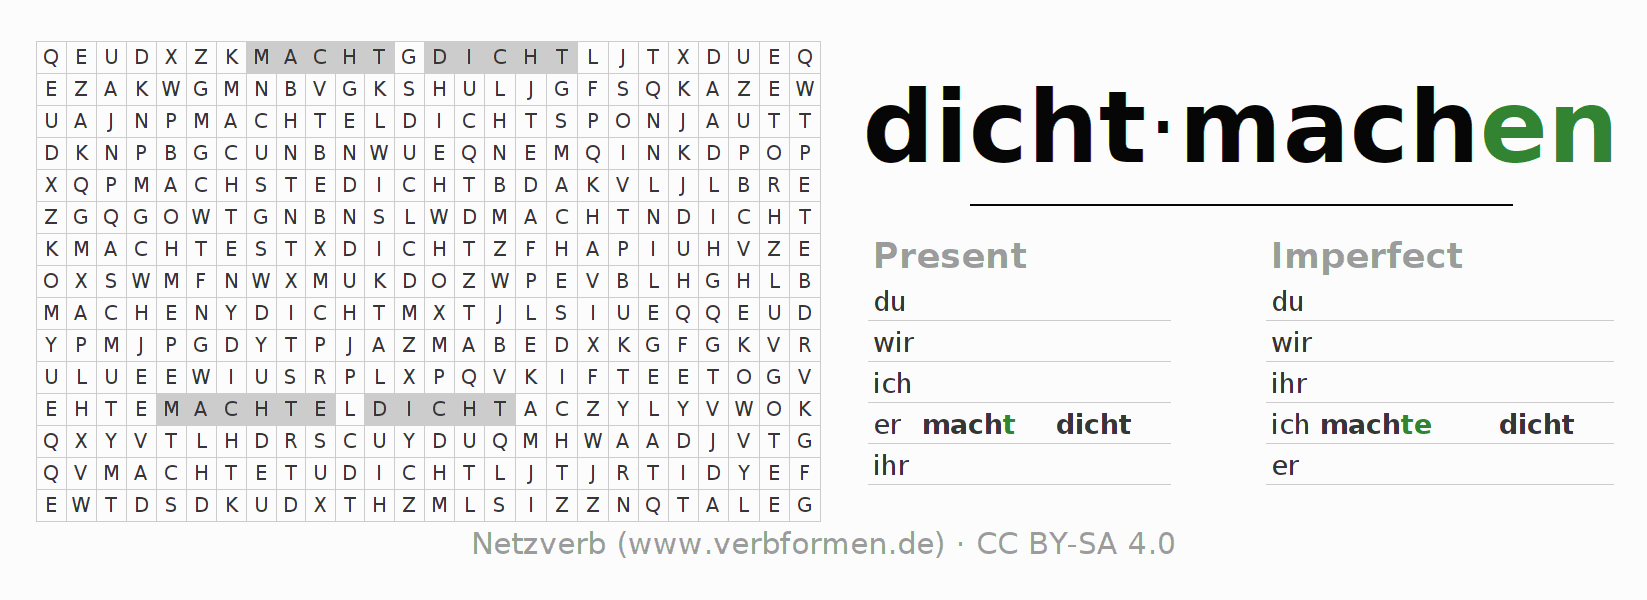 Word search puzzle for the conjugation of the verb dichtmachen